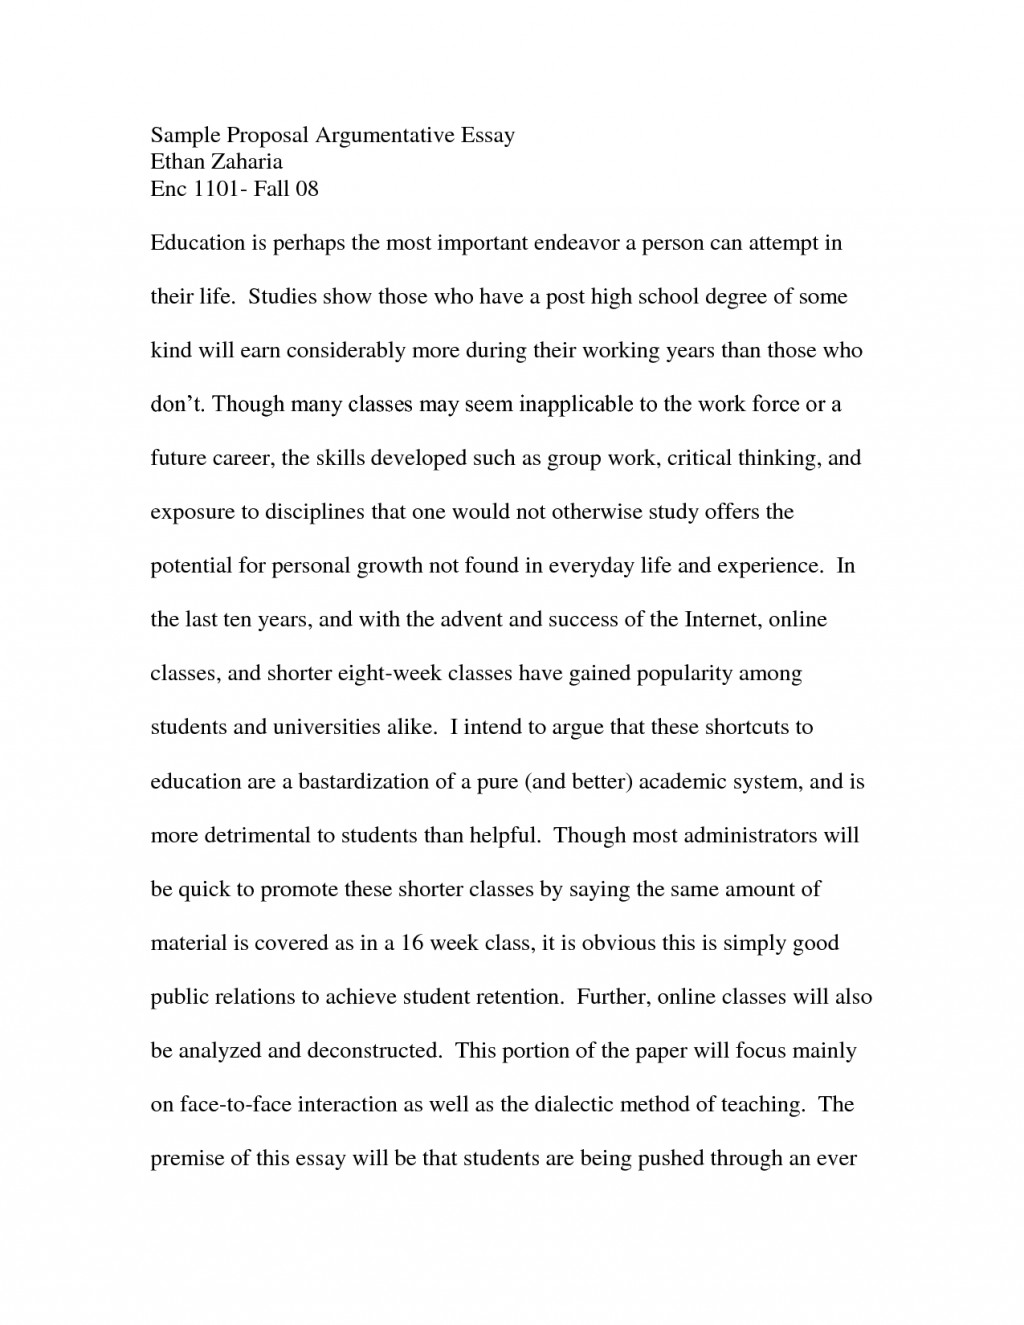 005 Essay Example 3d7hsocgst How To Write An Shocking Proposal For History Mla Large